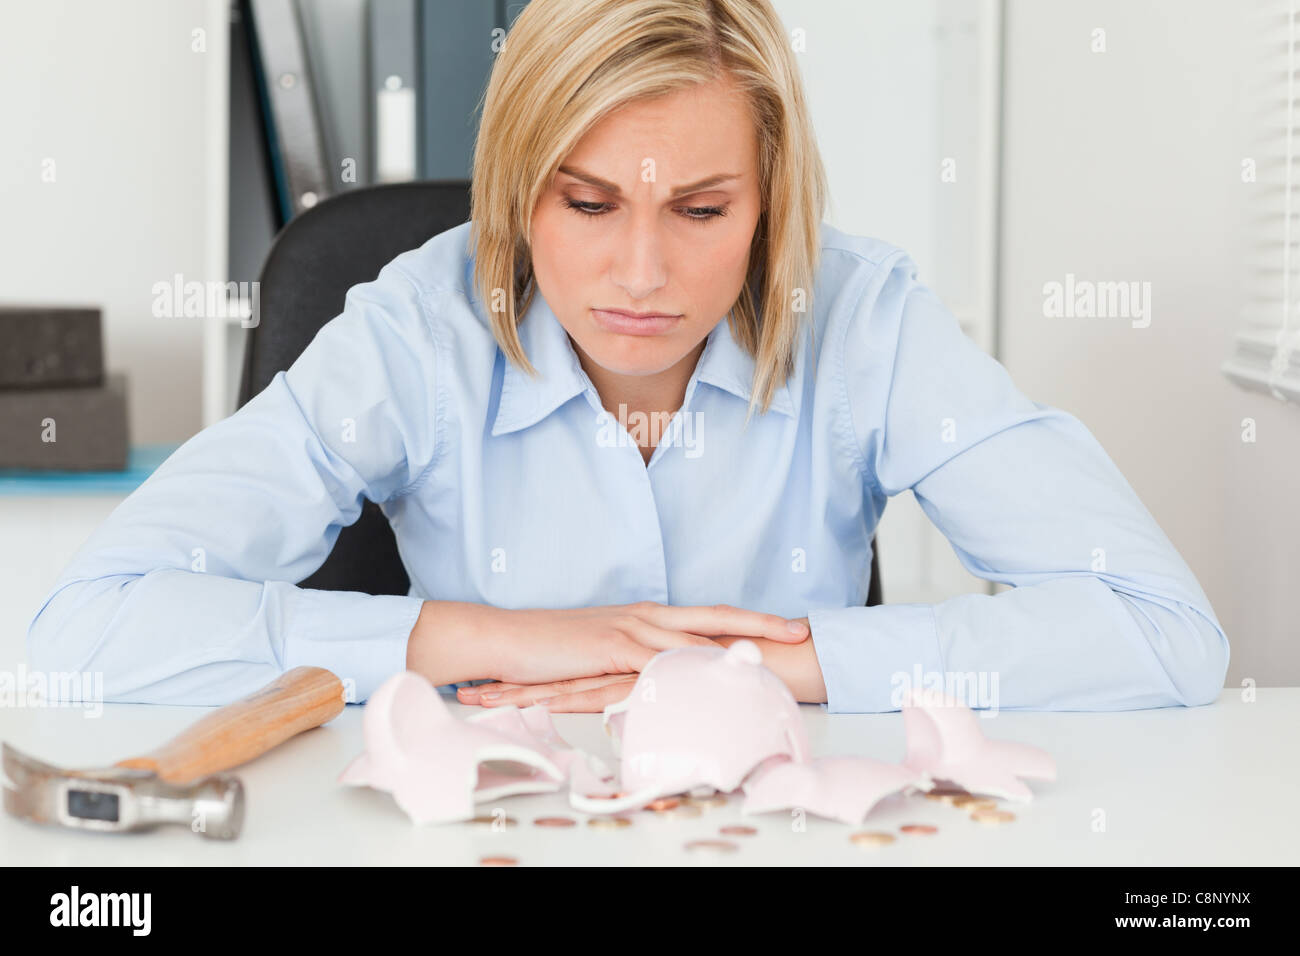 Sulking woman sitting in front of an shattered piggy bank with less in than expected - Stock Image